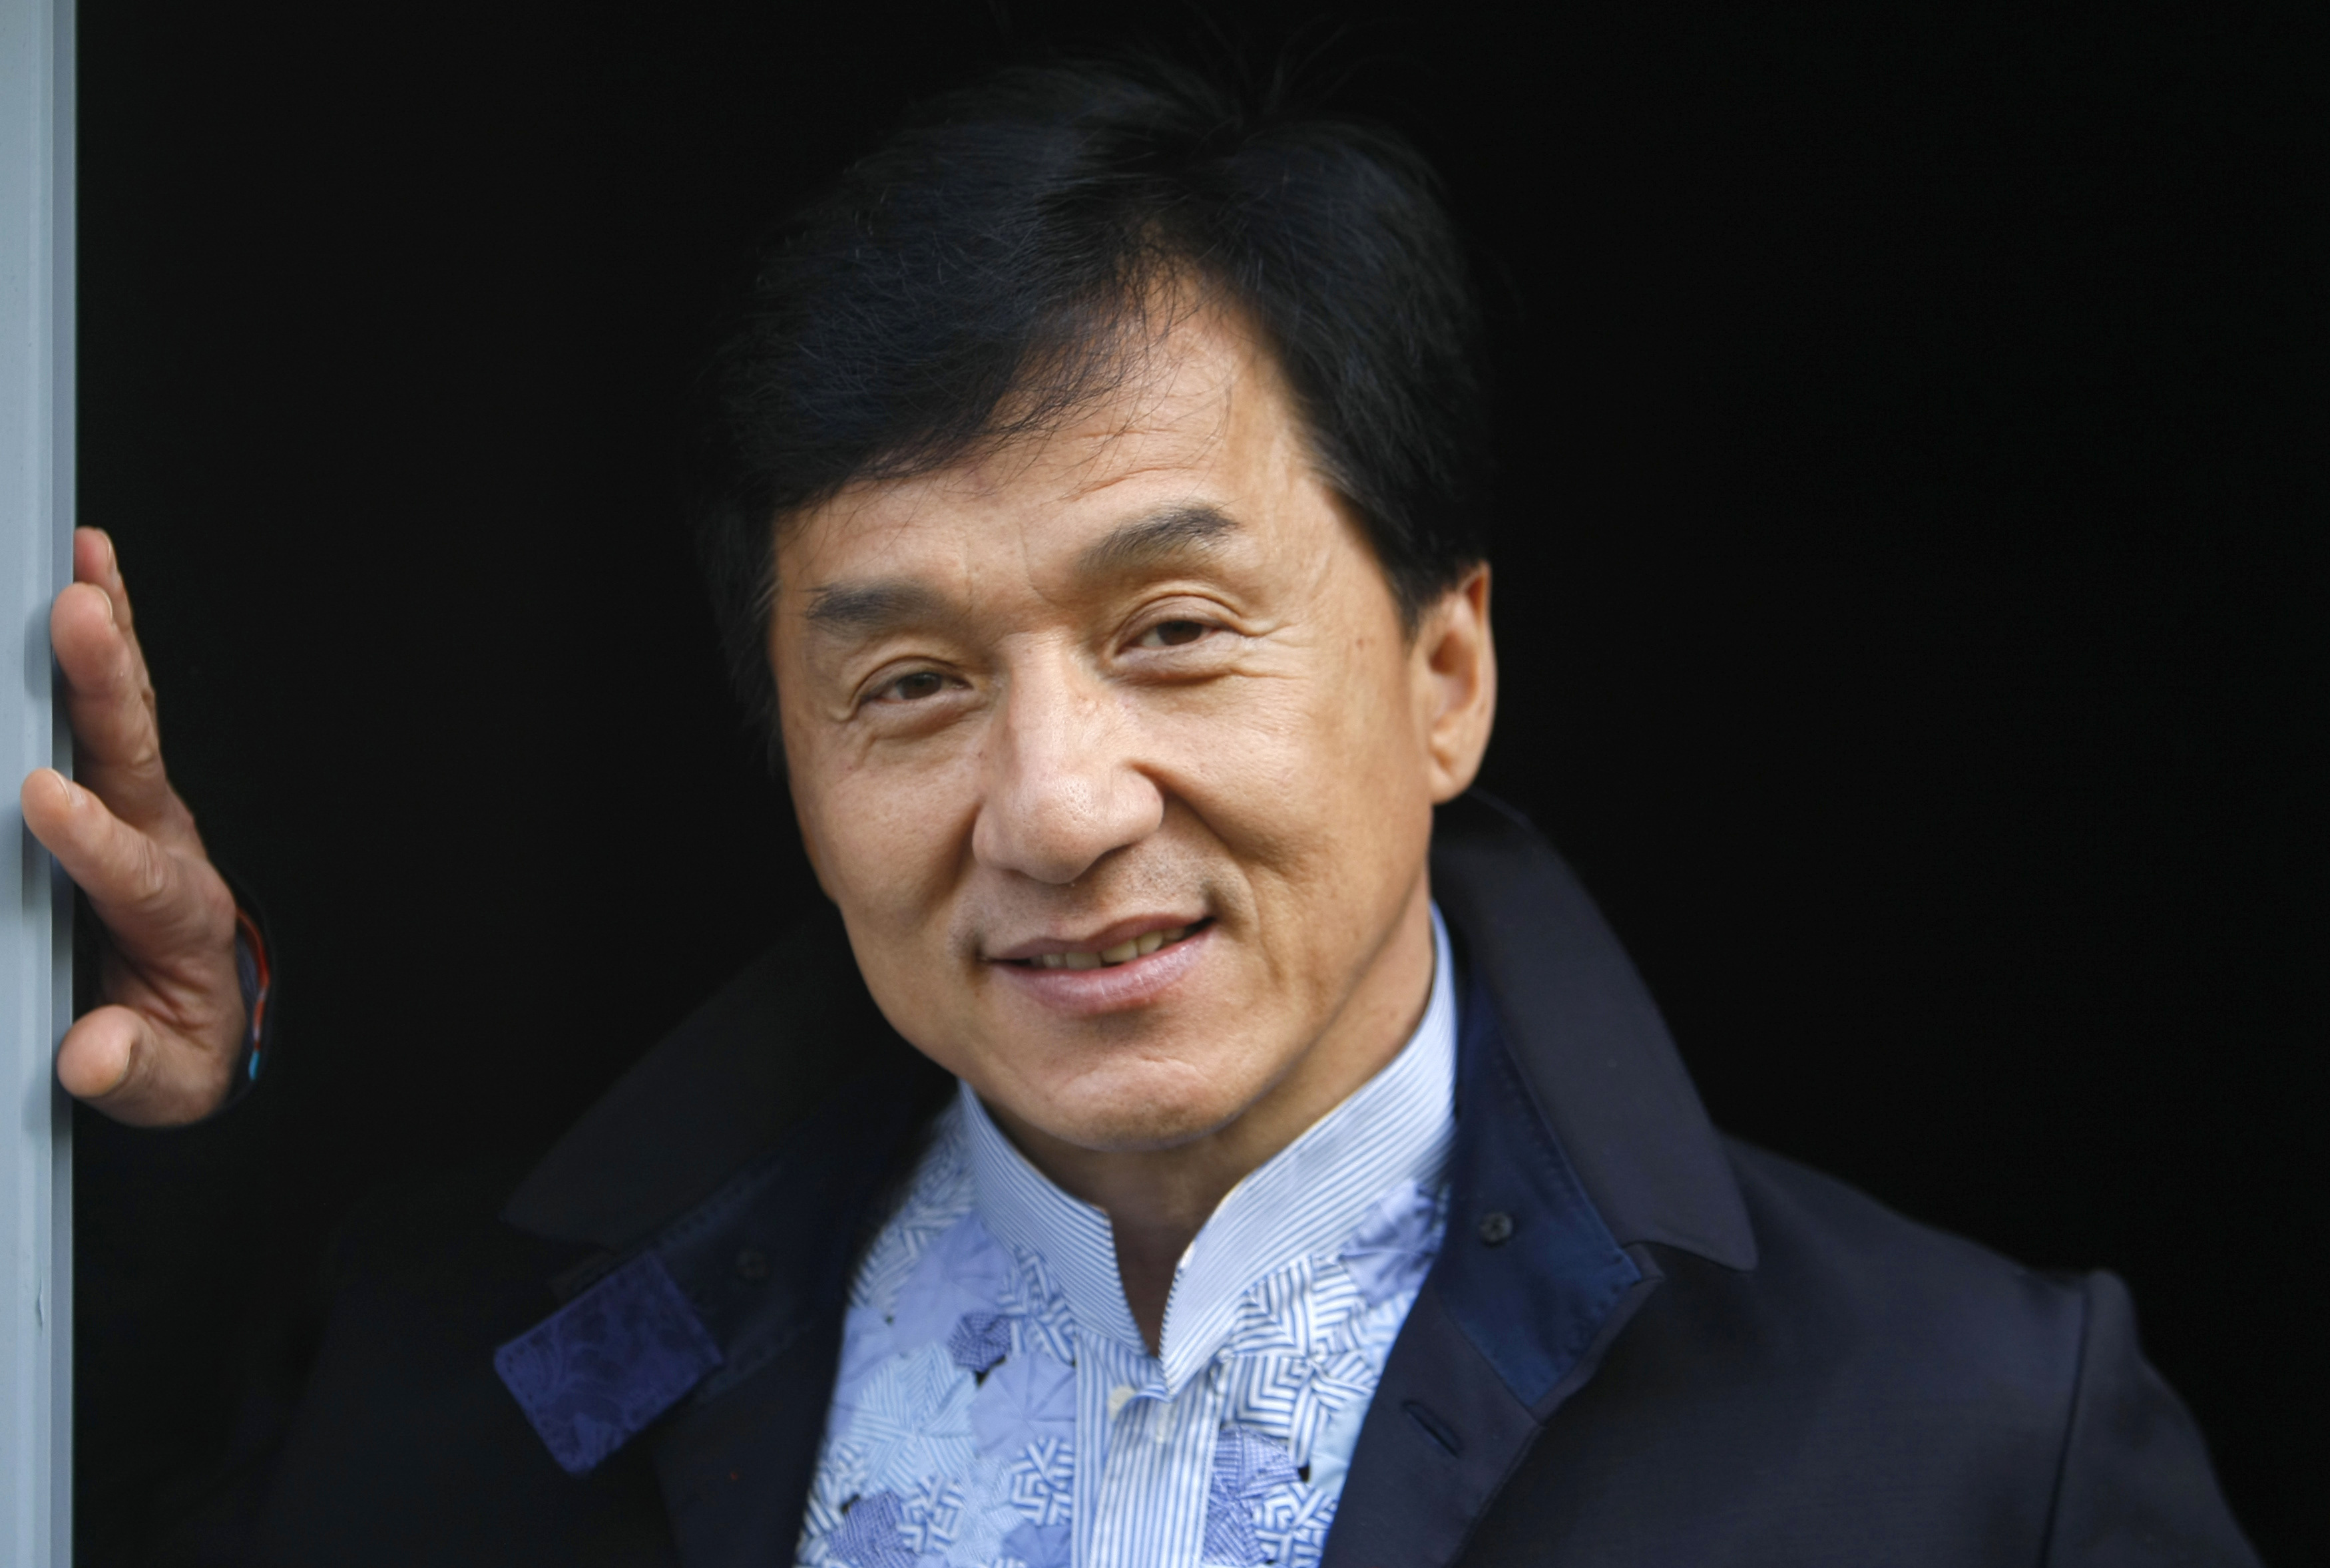 Jackie chan full hd wallpaper and background image 3500x2356 id 343311 - Jackie chan wallpaper download ...